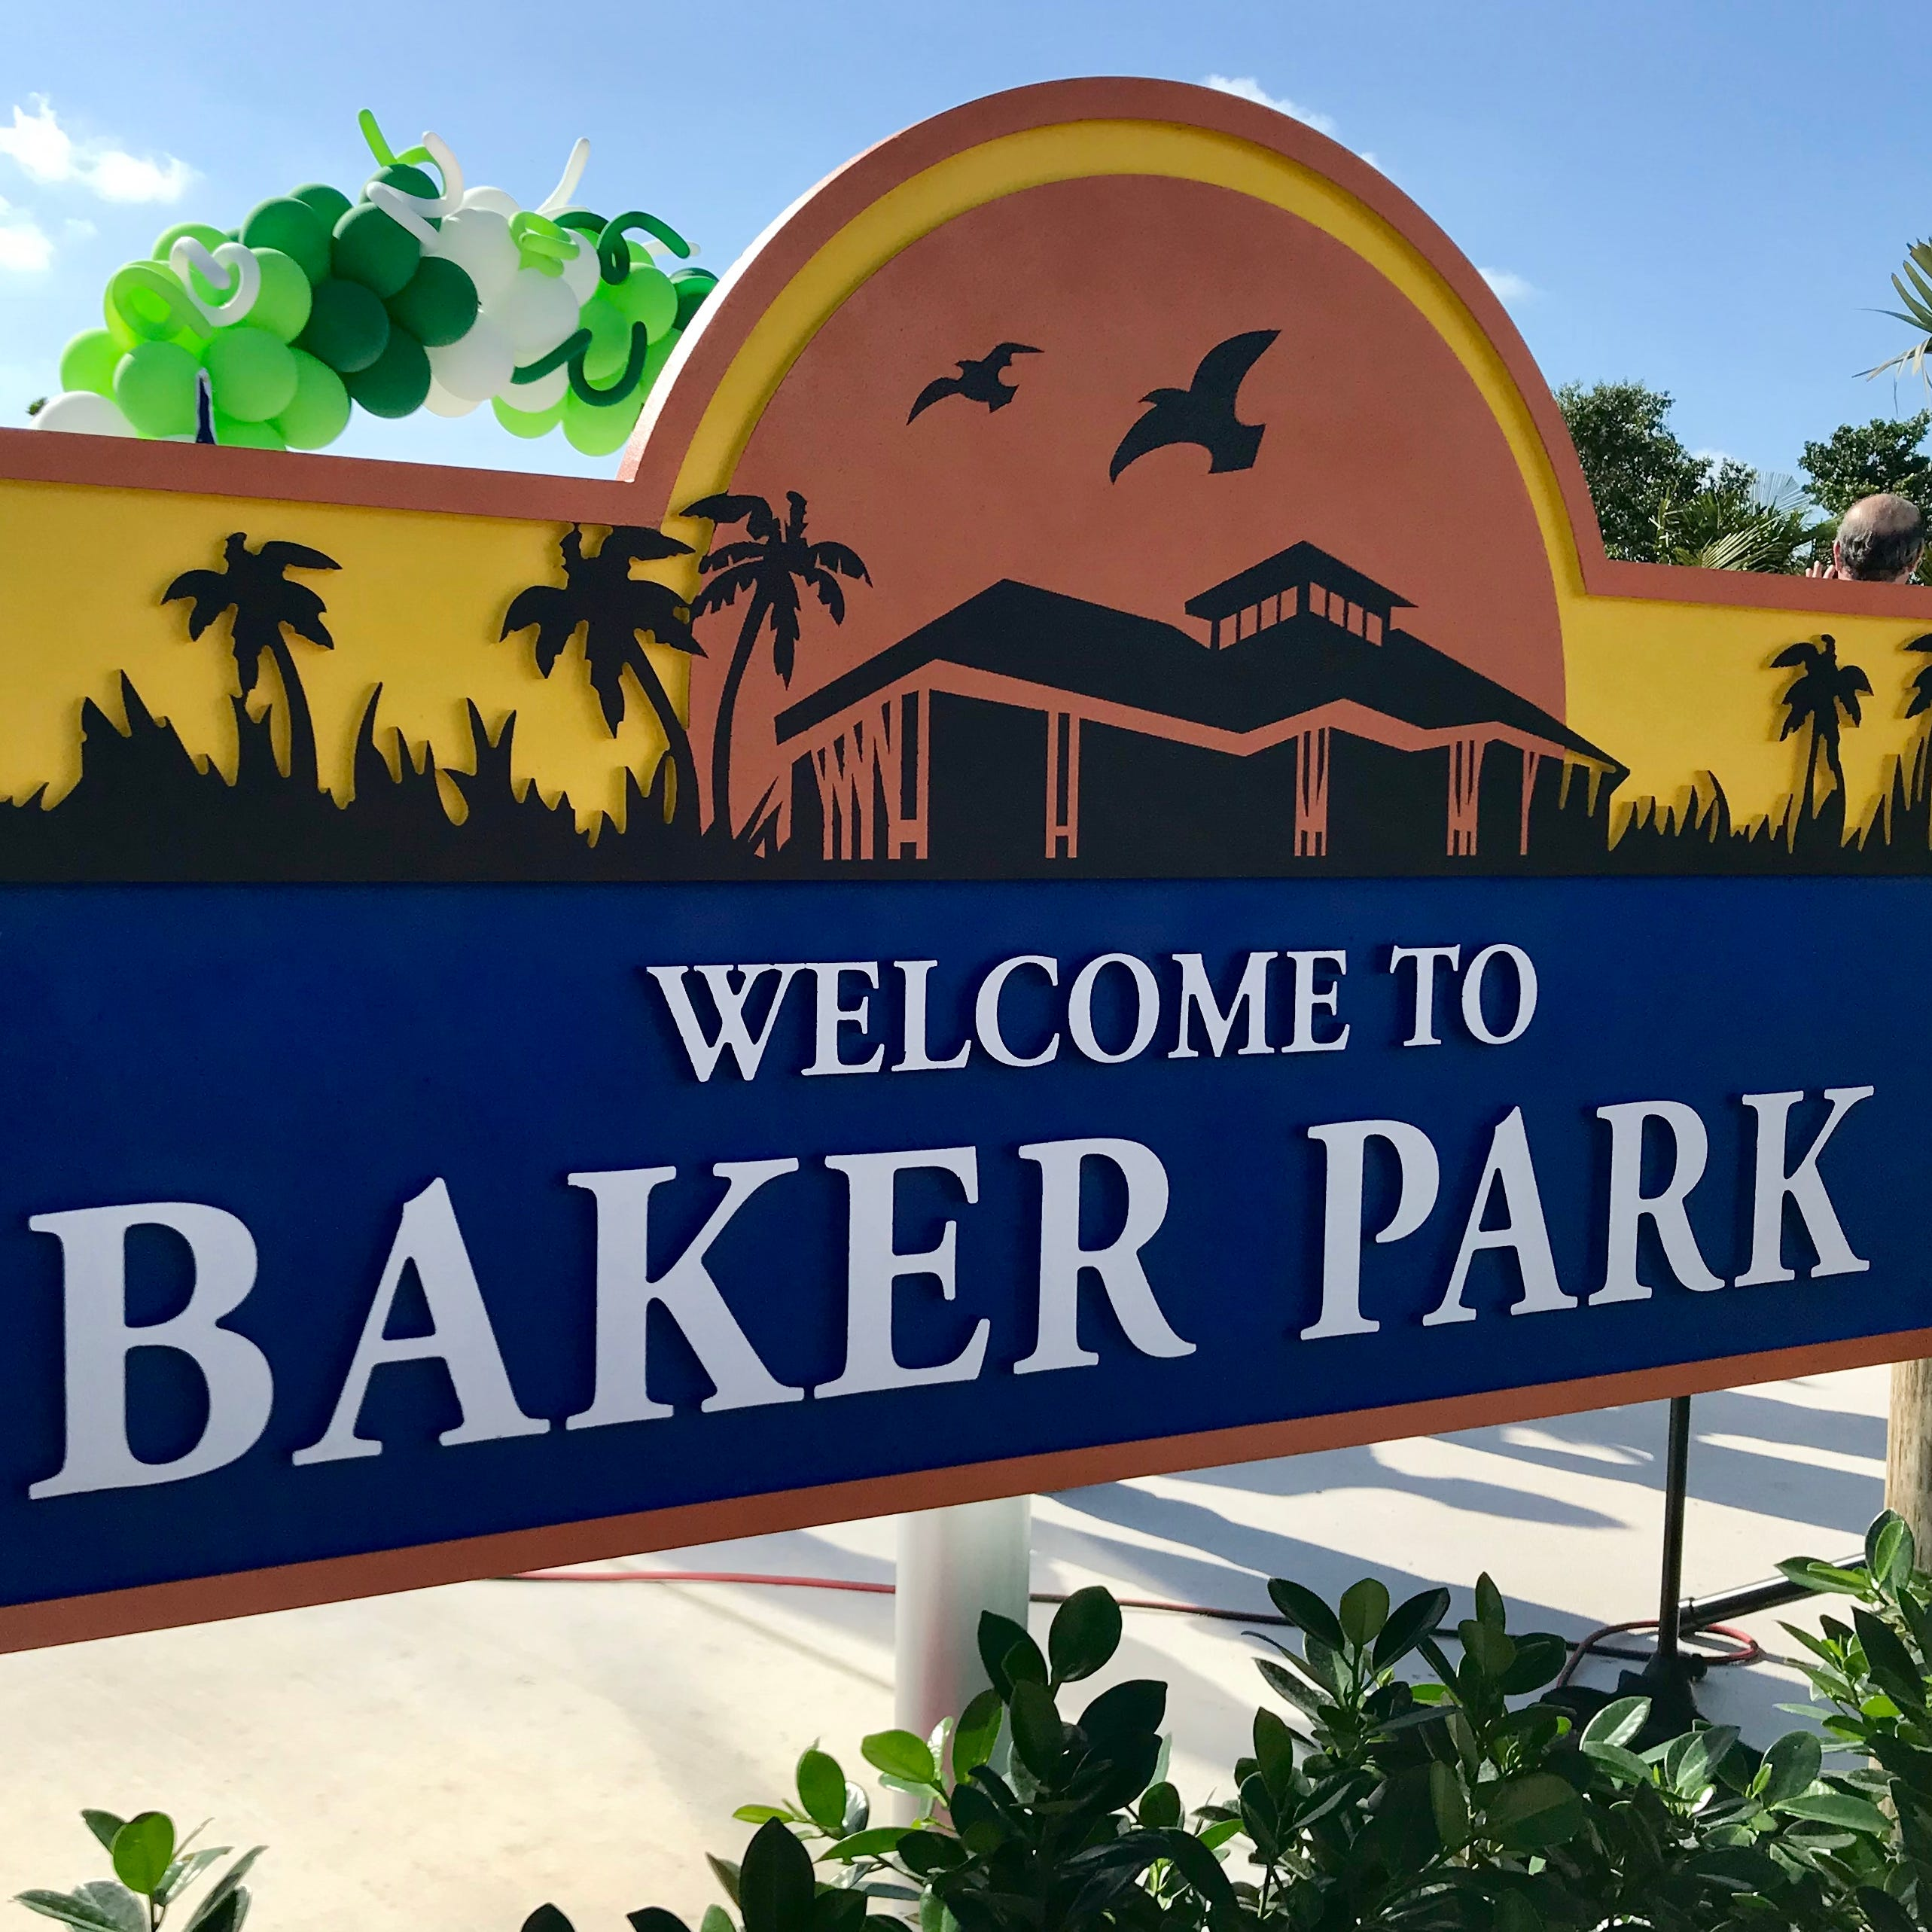 Everything you need to know about Baker Park — including its location